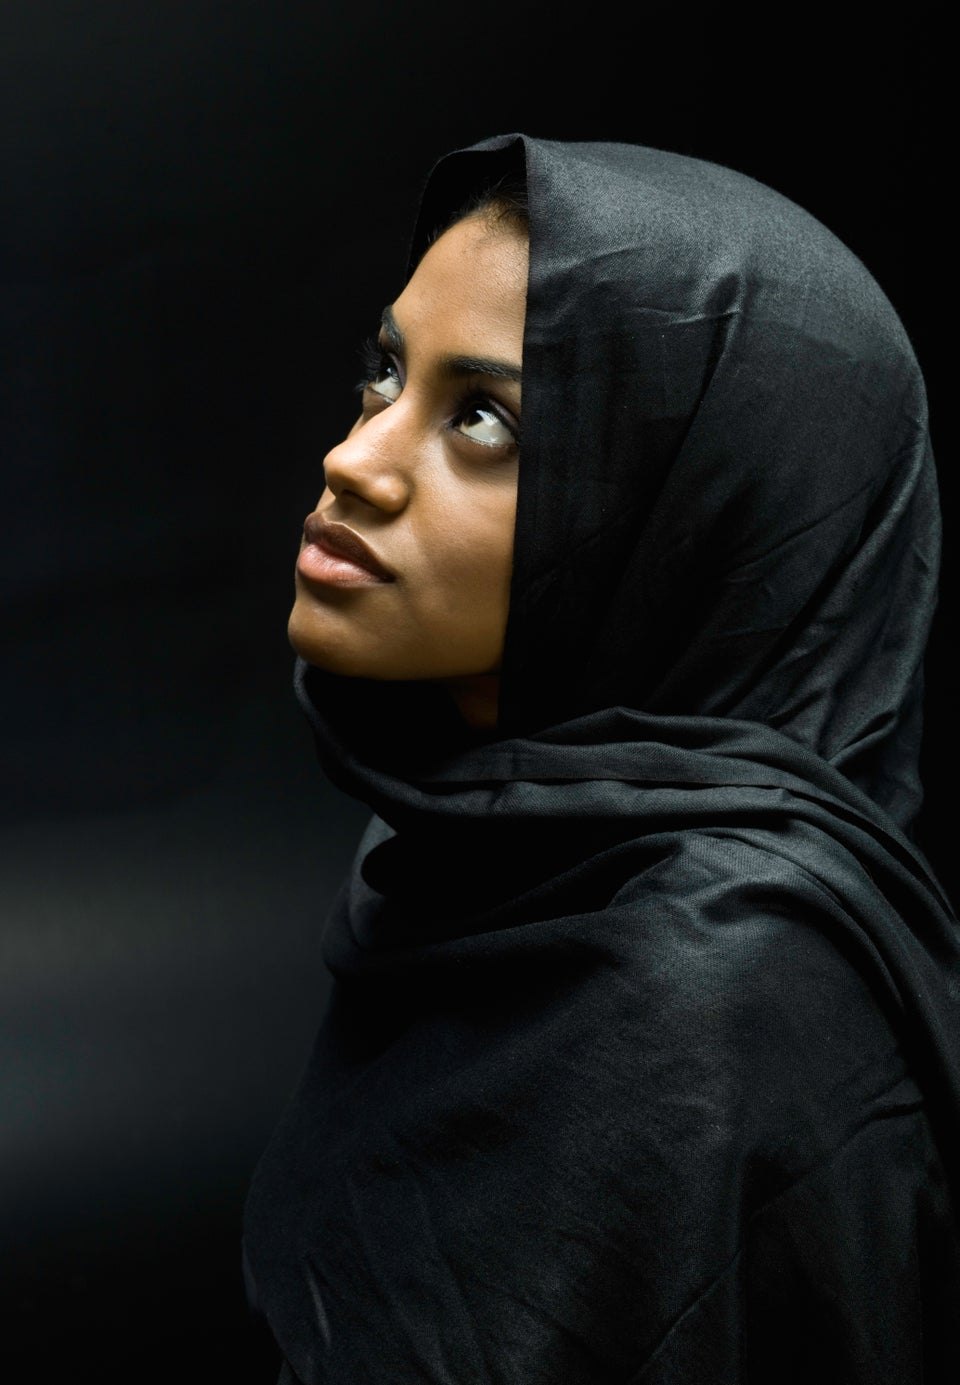 GOP Lawmaker Proposes, Then Withdraws Bill That Would Make Wearing A Hijab Illegal